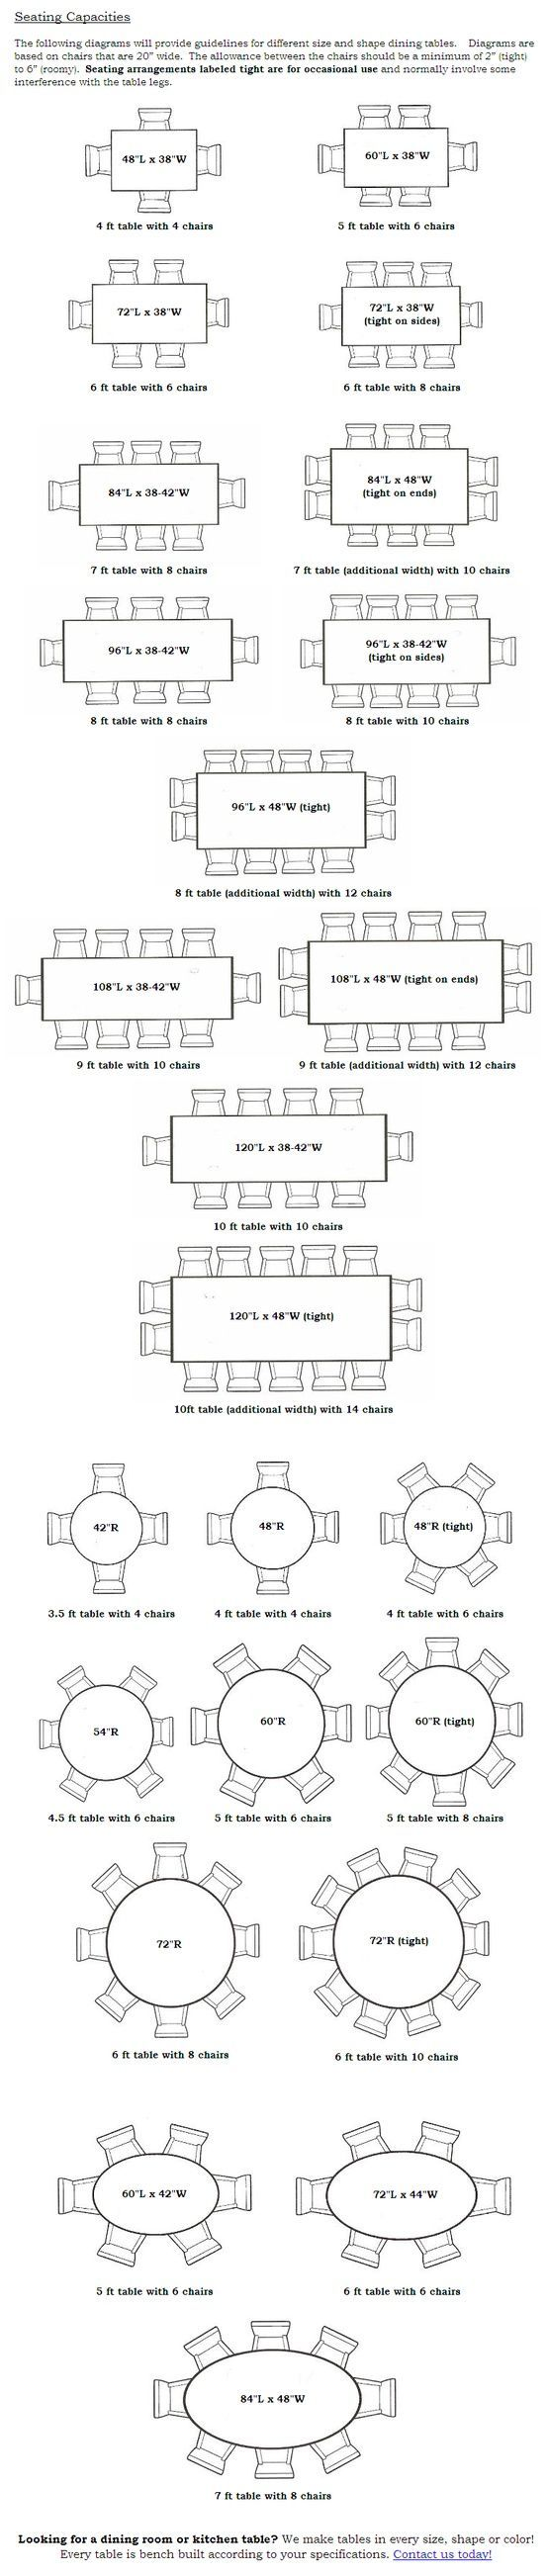 Dining Table seating capacities chart by size and shape - MIX of 5 & 6 FT round tables; wedding party - 6 ft rectangular and 4ft sweetheart